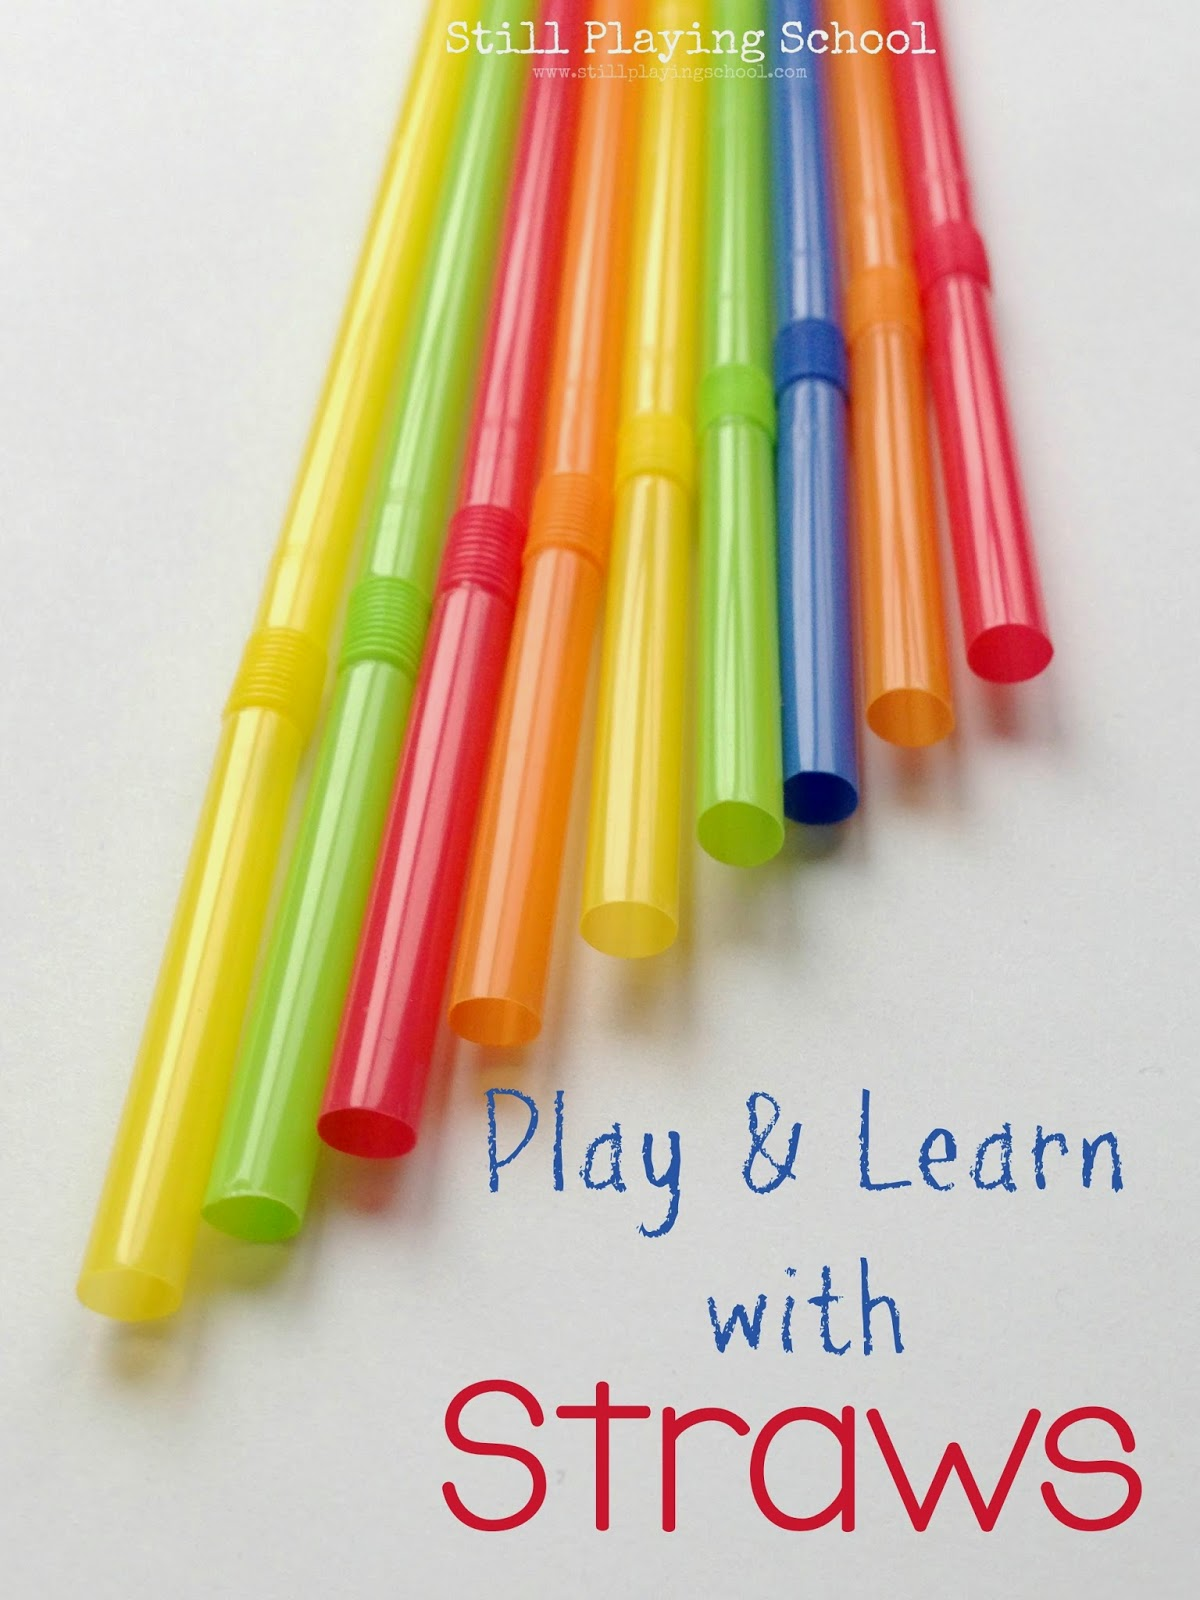 Straws For Crafts Projects And Activities For Kids Still Playing